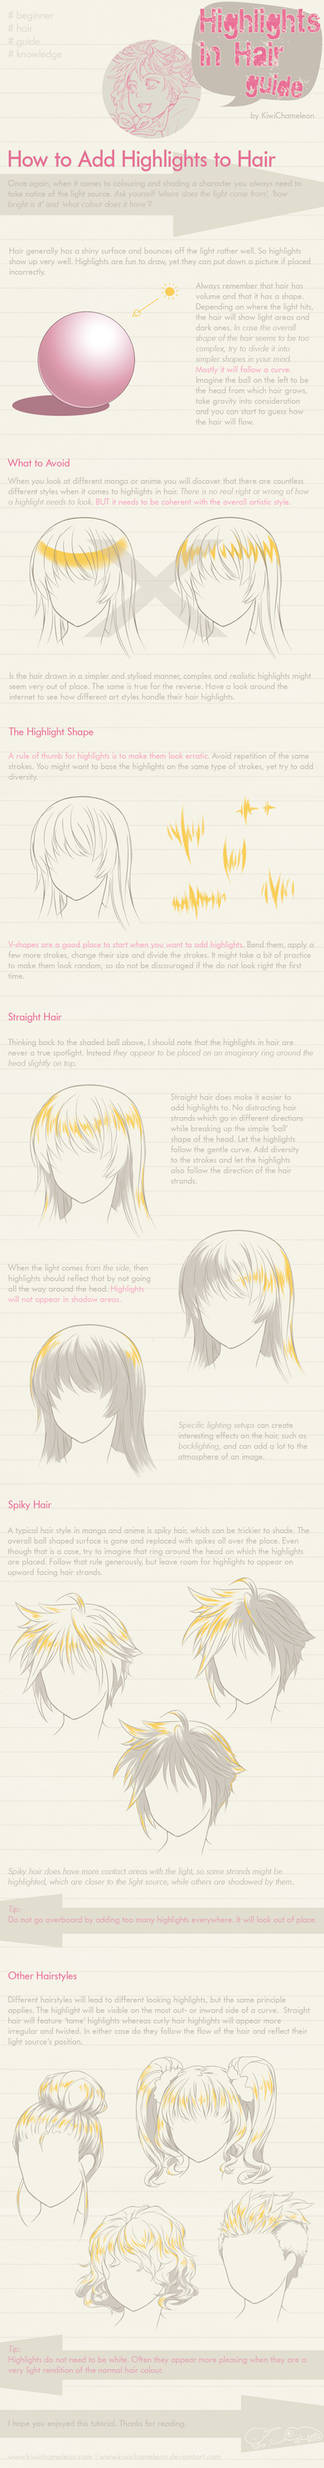 Highlights in Hair - guide